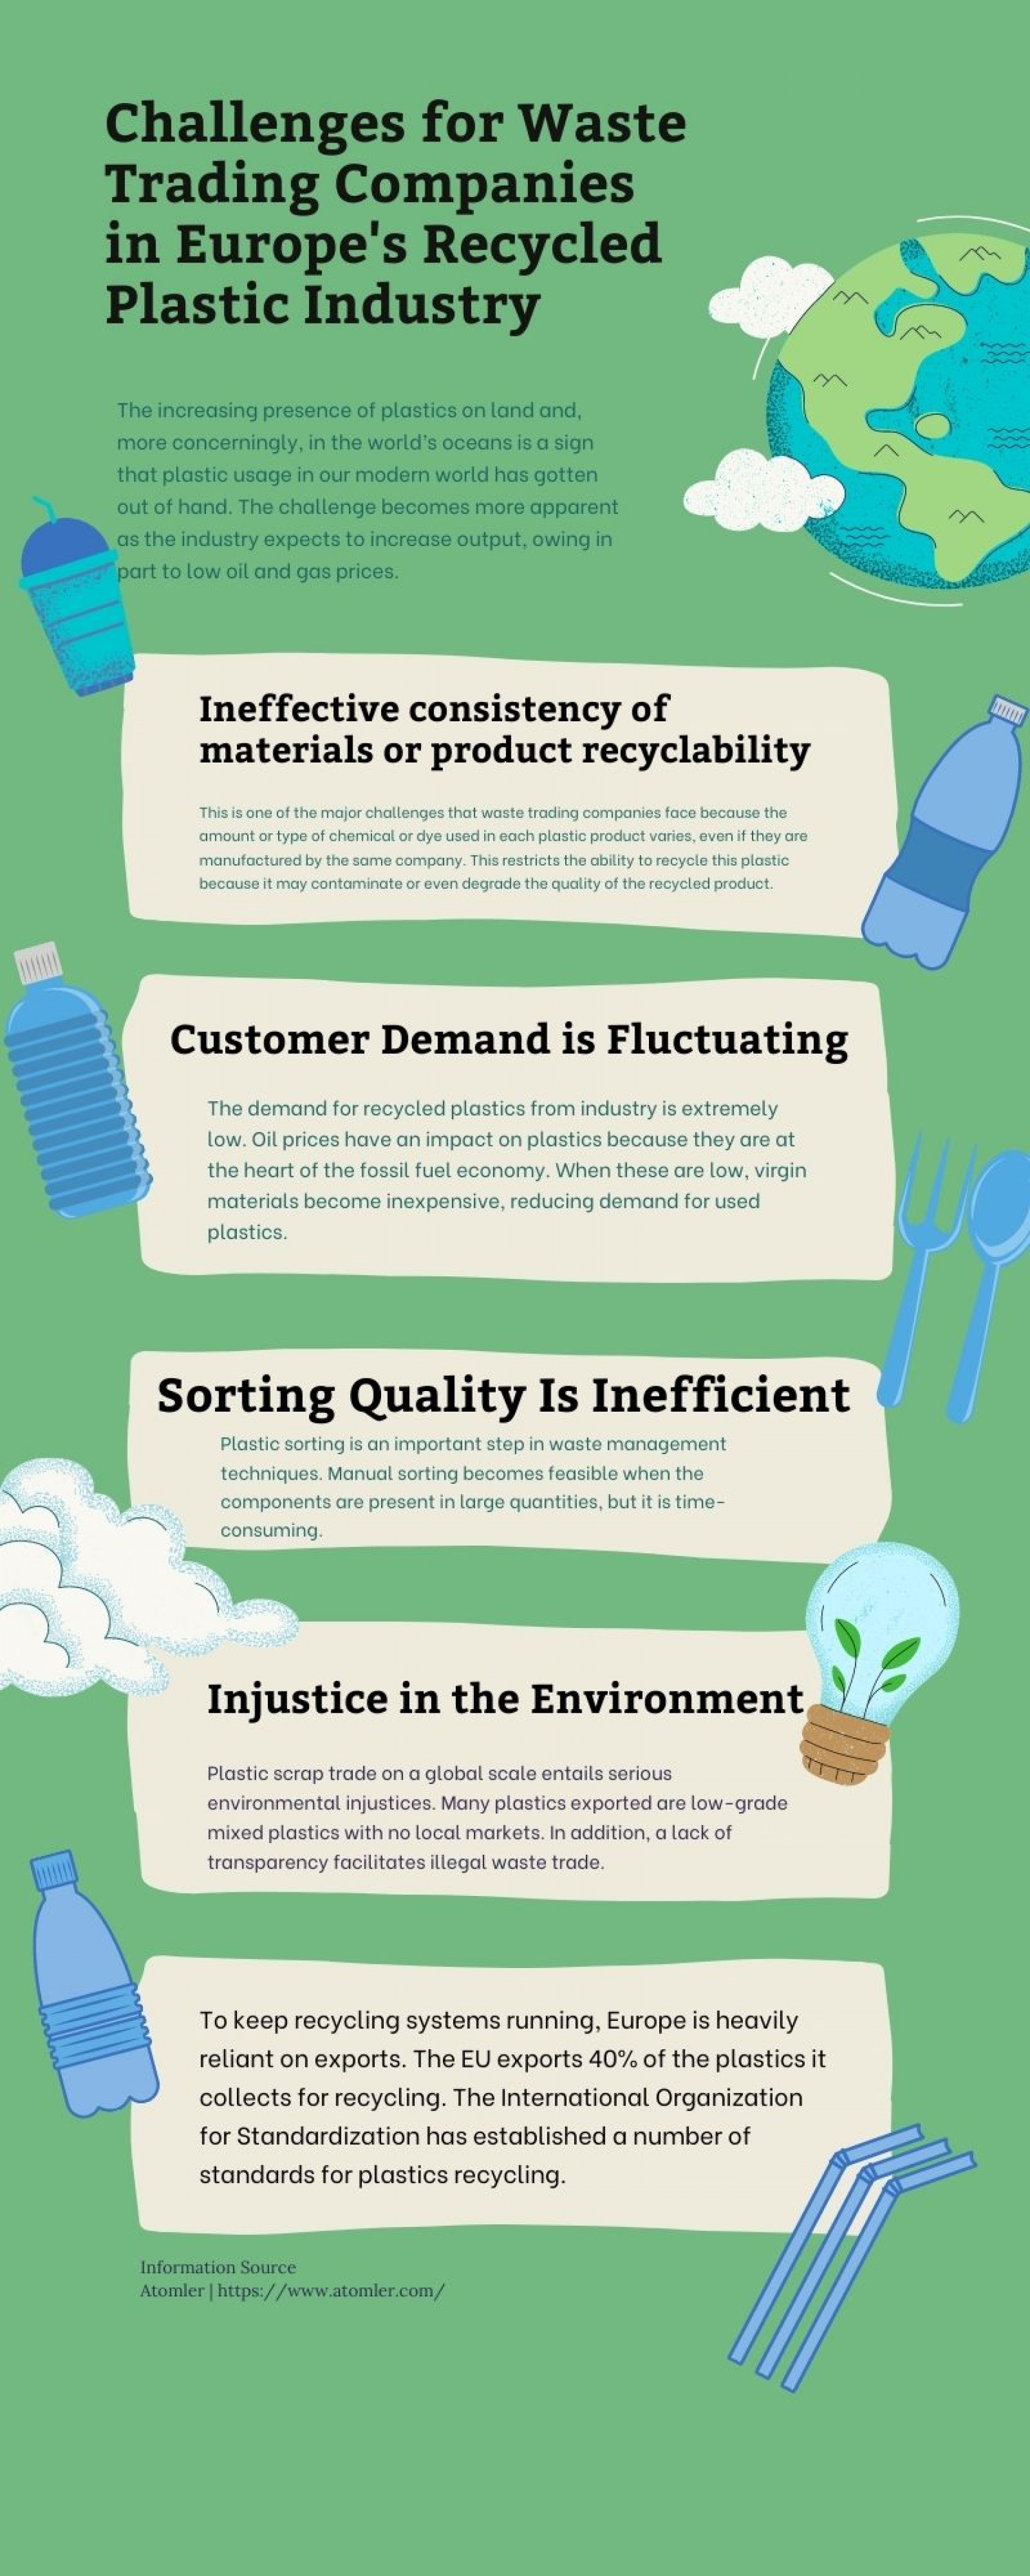 Challenges In The Recycled Plastic Industry in Europe Infographic